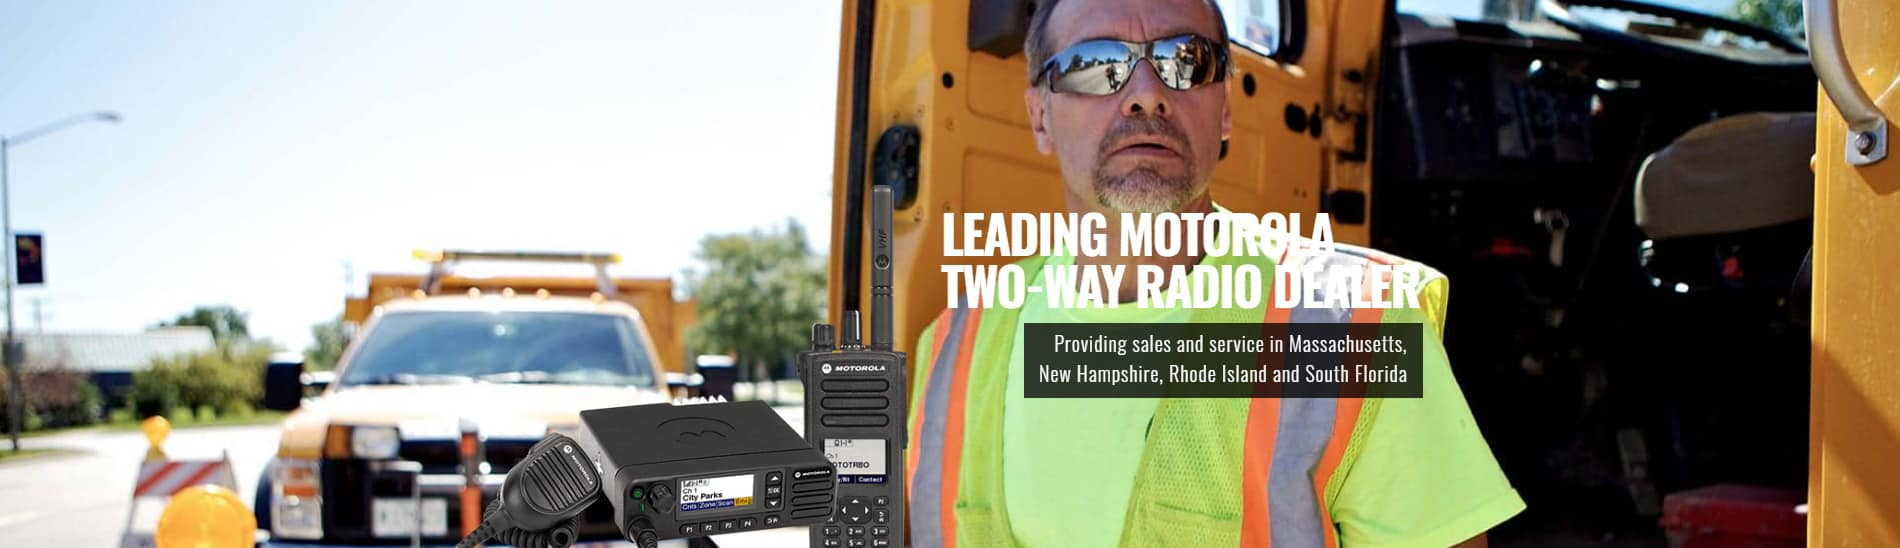 Industrial Communications Two-Way Radios